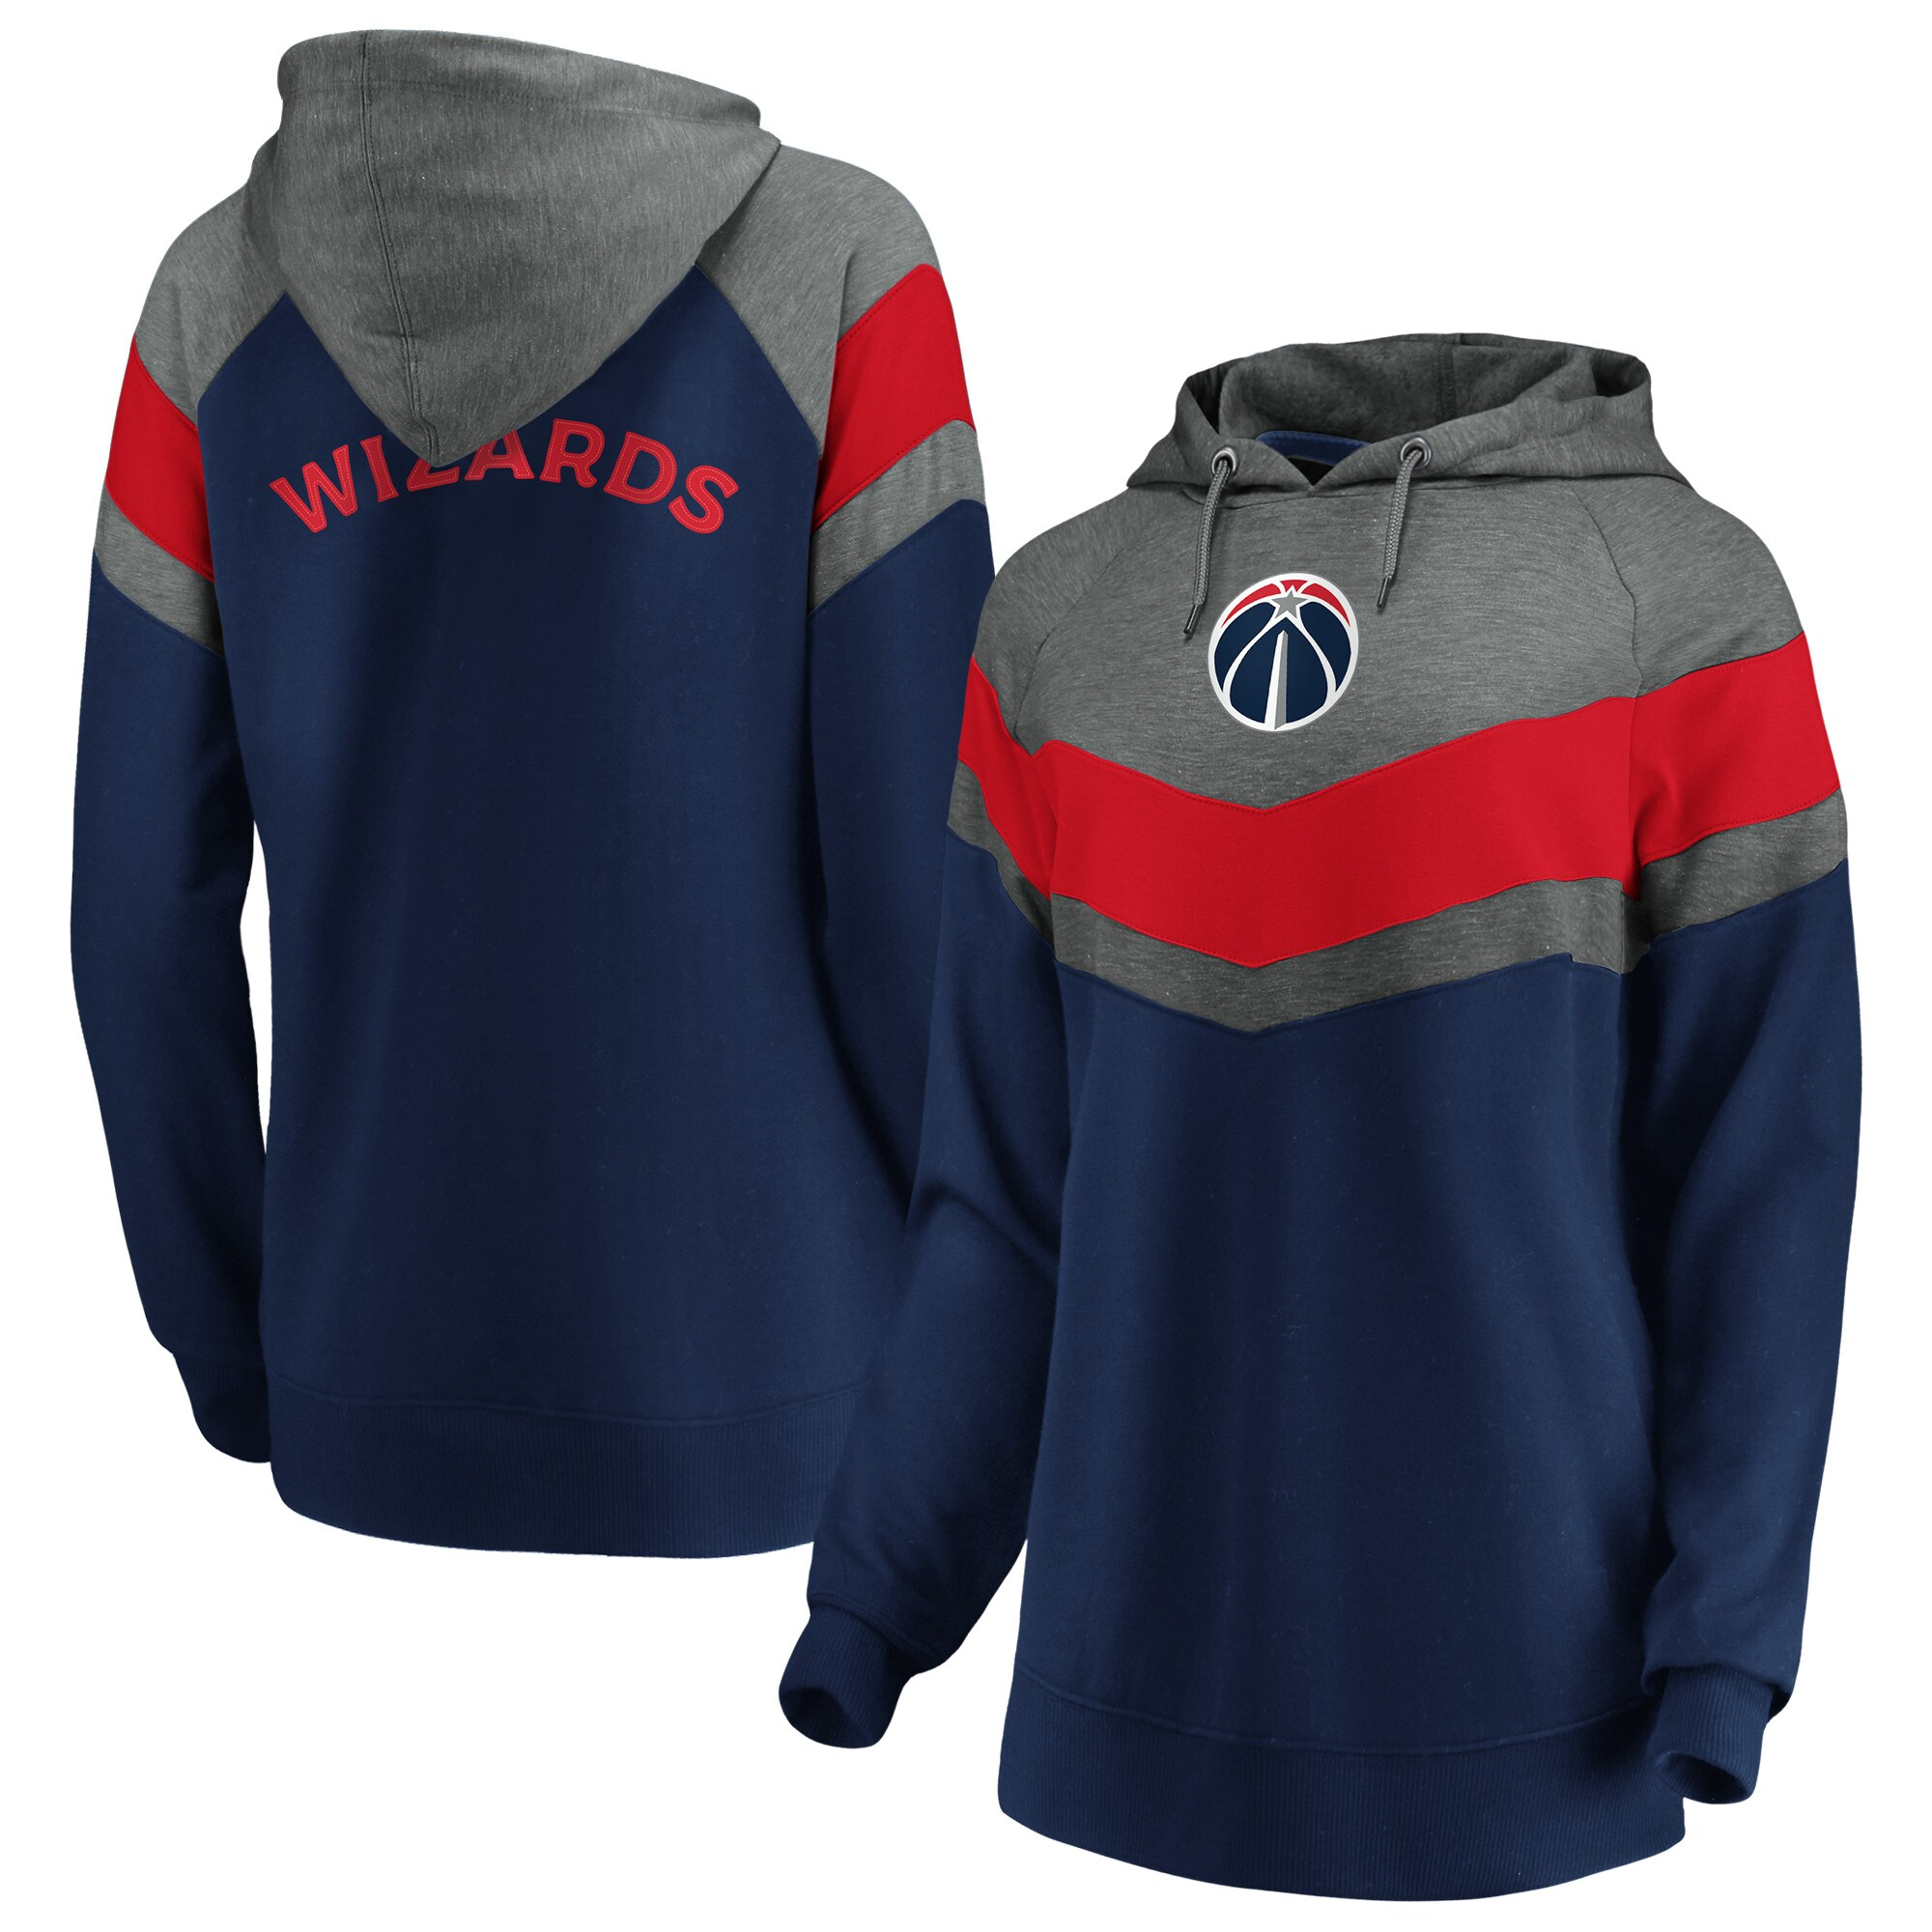 Washington Wizards Fanatics Branded Women's True Classics Go All Out Chevron Pullover Hoodie - Gray/Navy